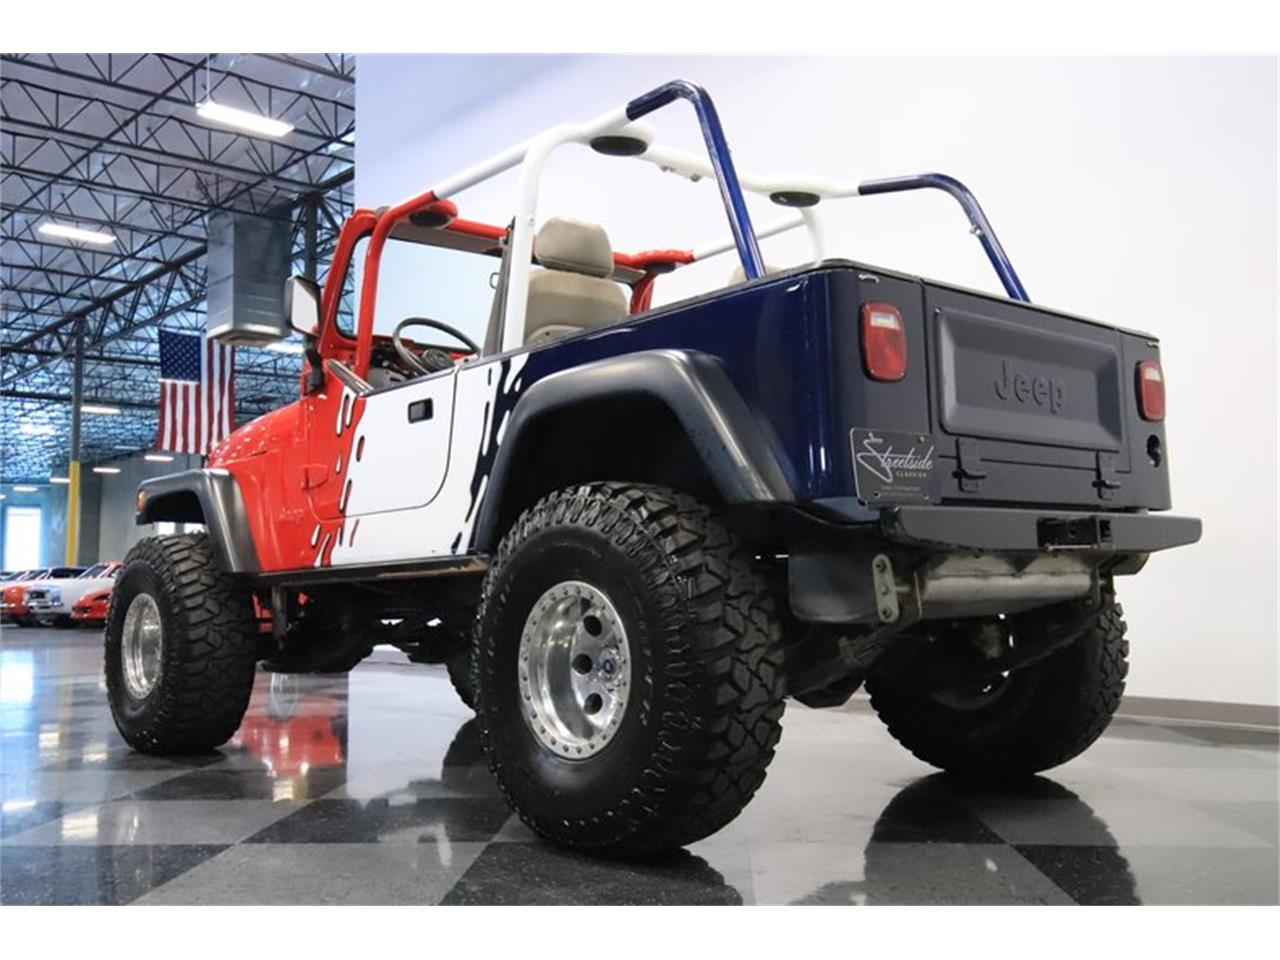 Large Picture of '83 Jeep CJ8 Scrambler Offered by Streetside Classics - Phoenix - Q5HM